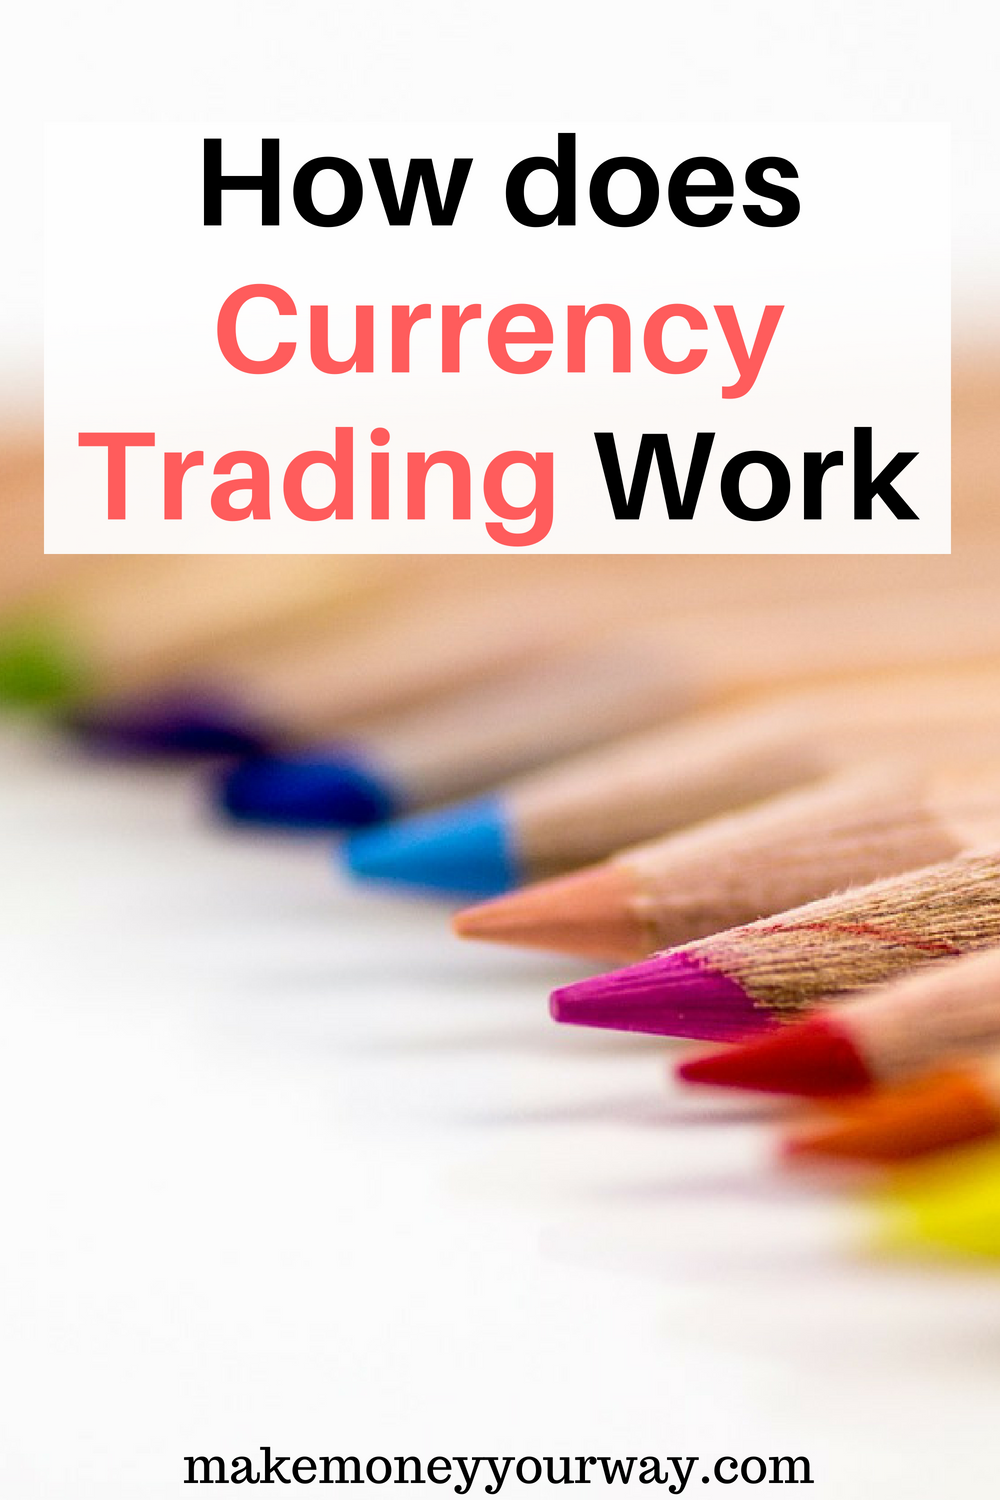 Does forex trading really make money